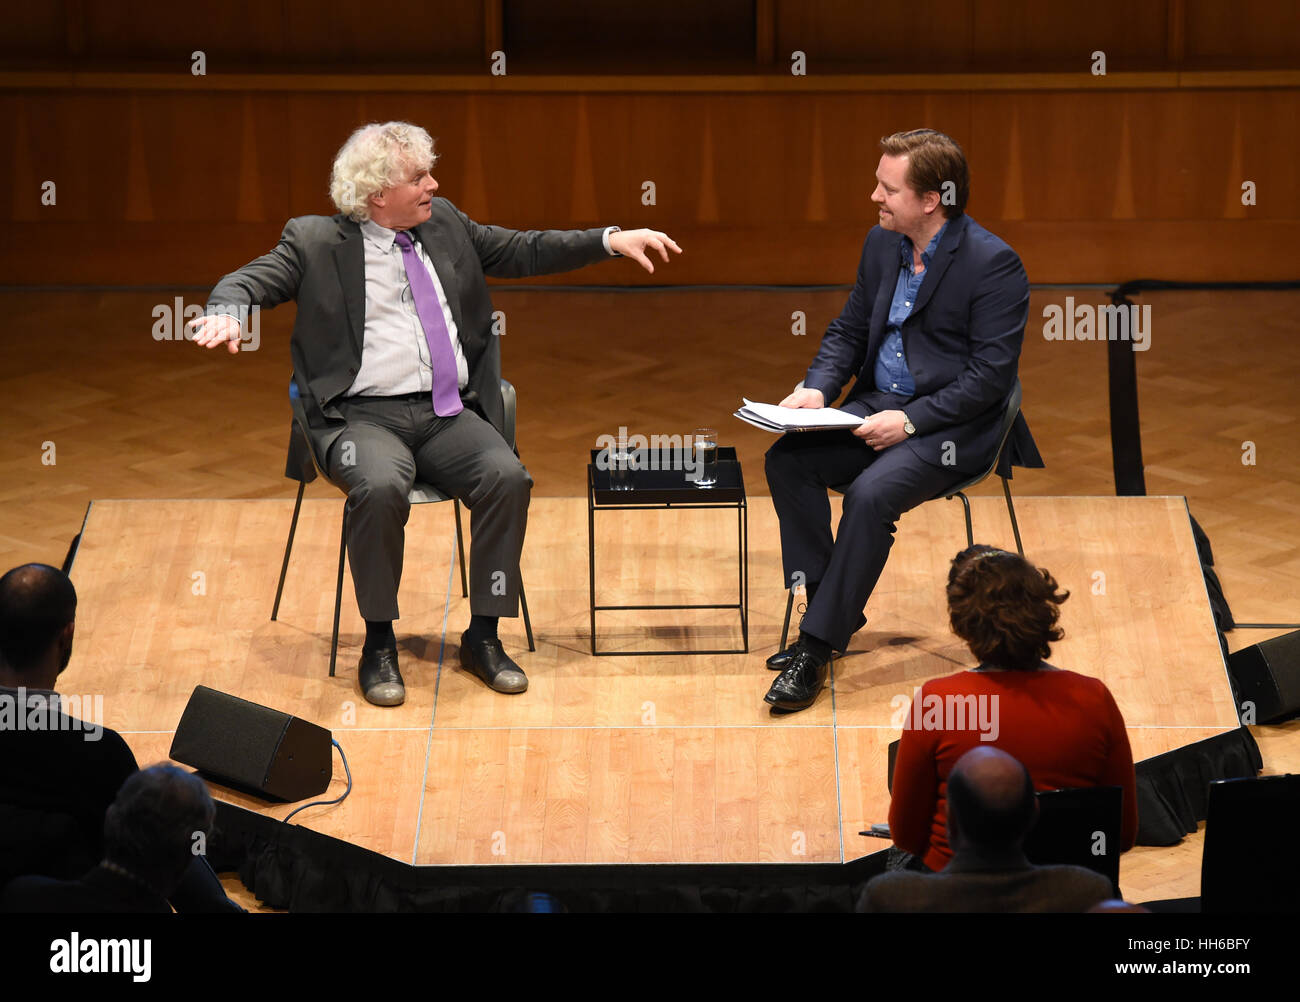 Sir Simon Rattle (left) unveils his future plans for the London